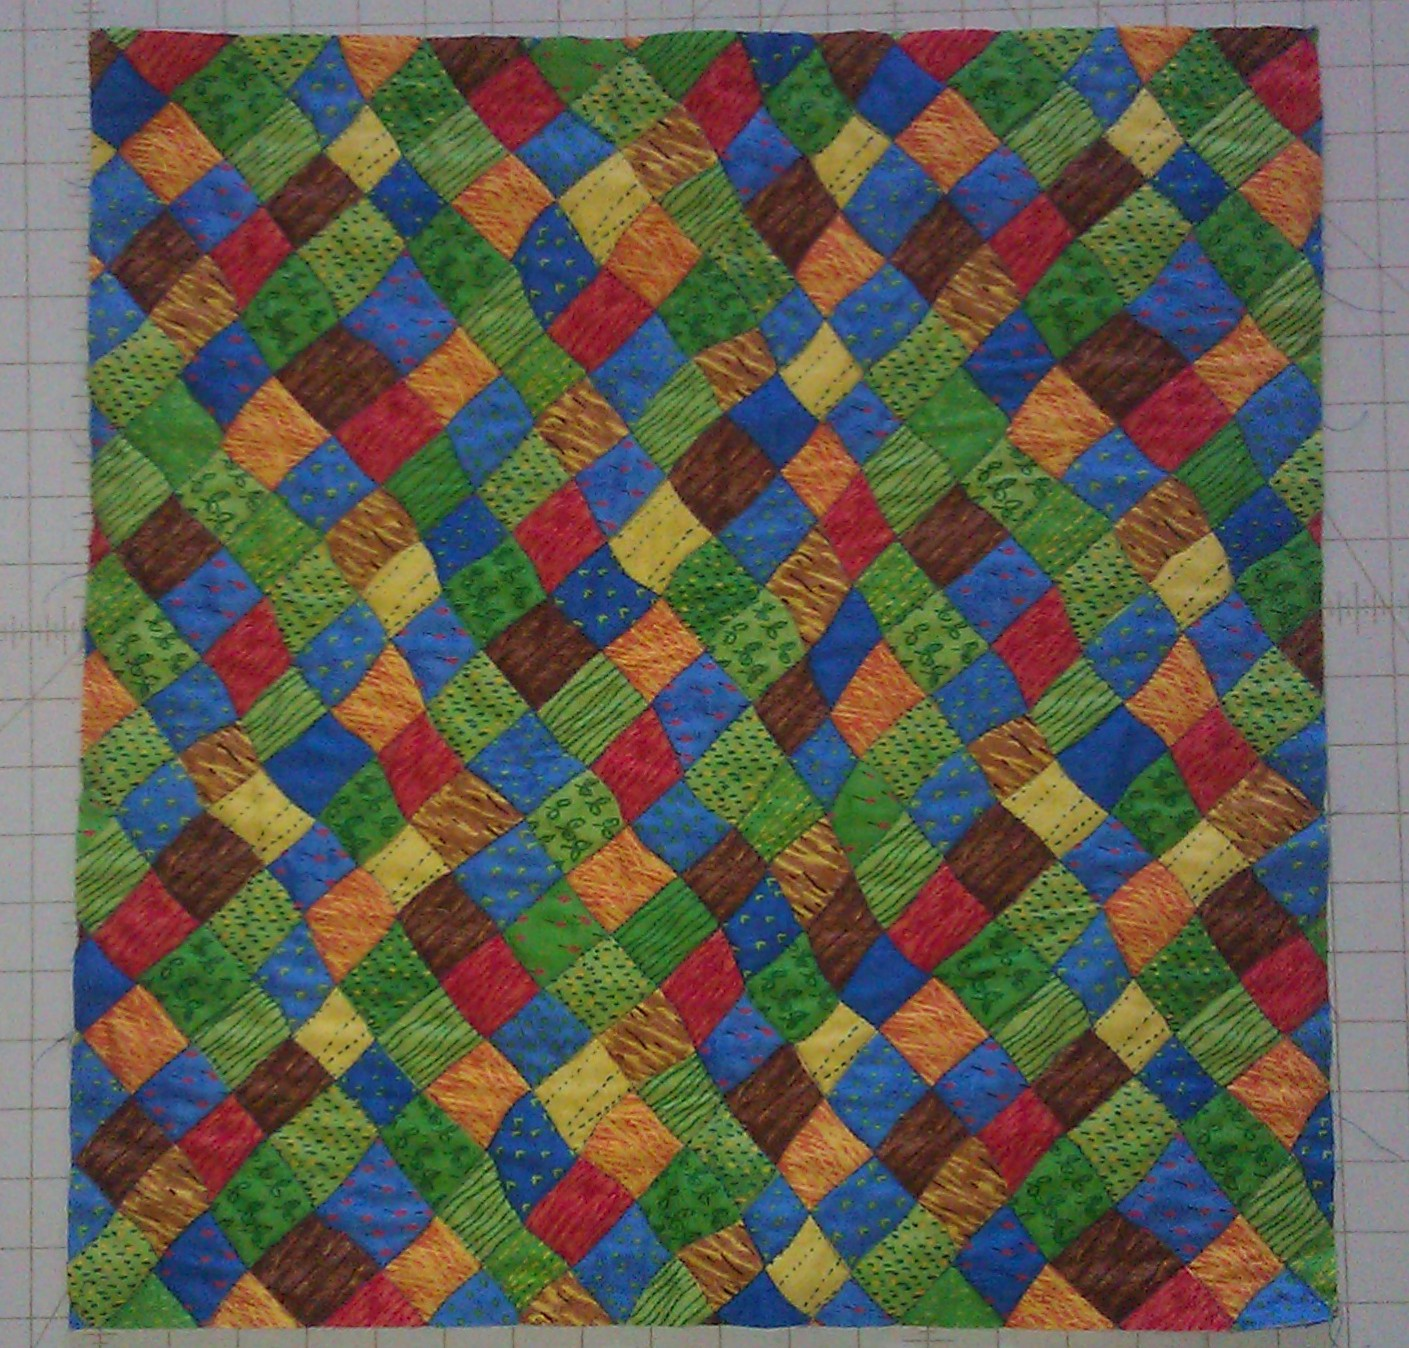 Sew EZ Quilting: How To Sew Binding To A Quilt